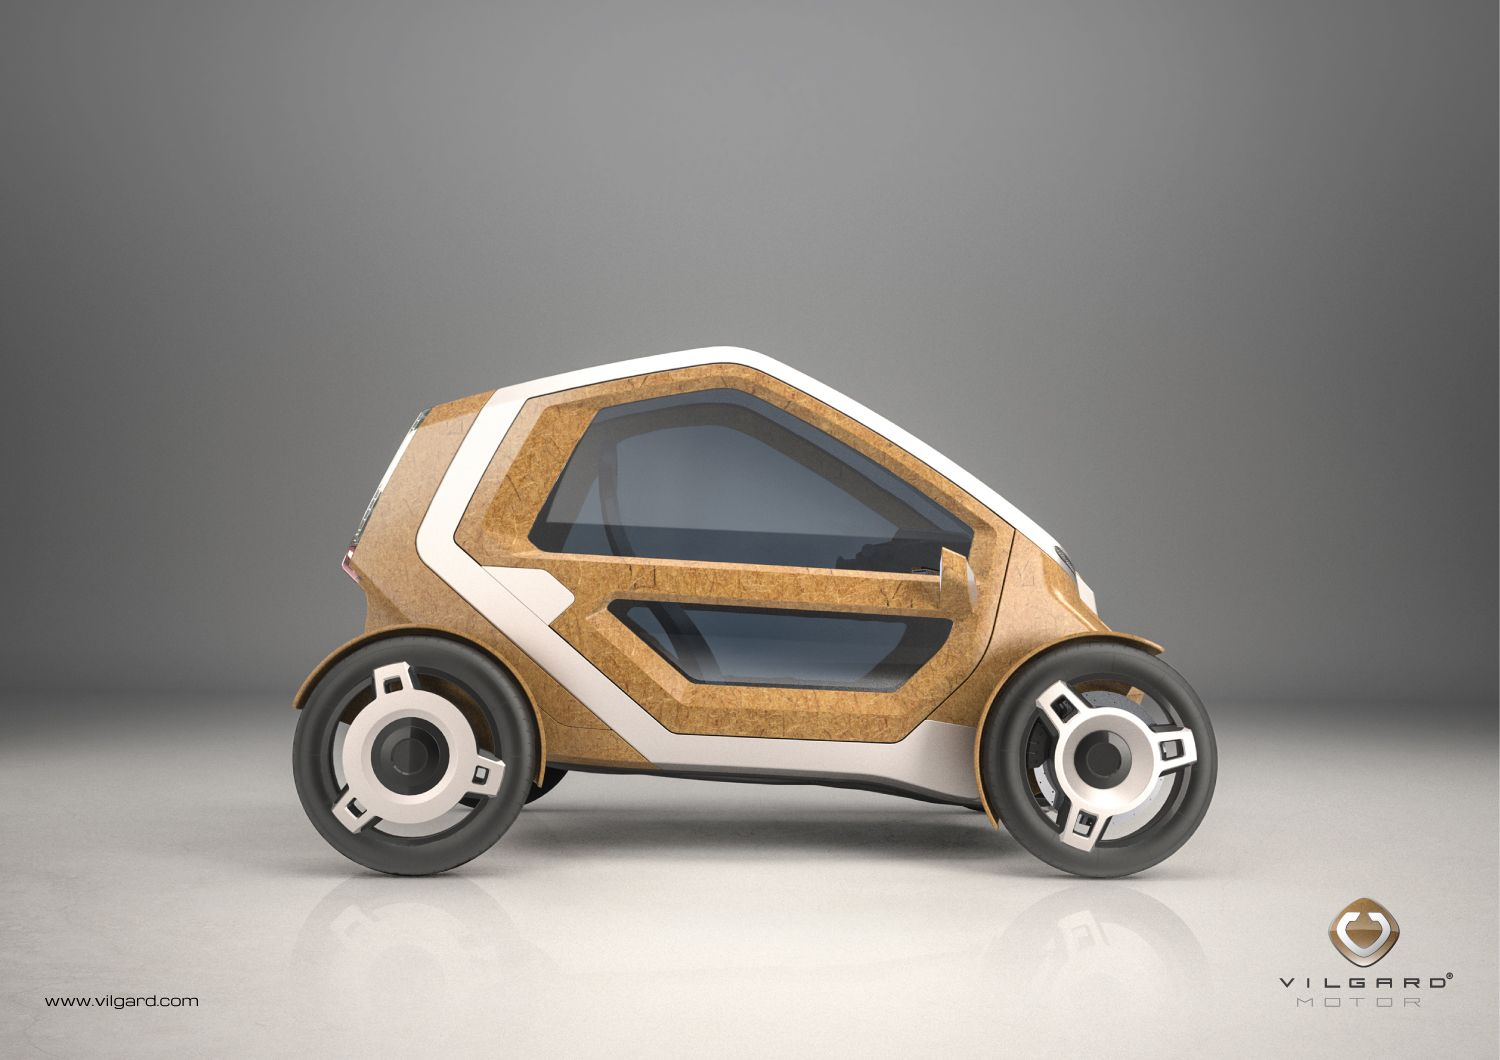 Villgard Motor Pedal Electric Car With Sustainable Material Bio The Bmw I1 Is An Singleseater Trikecar Concept By Designer Cars Transportation Design Composites Hemp Fibres